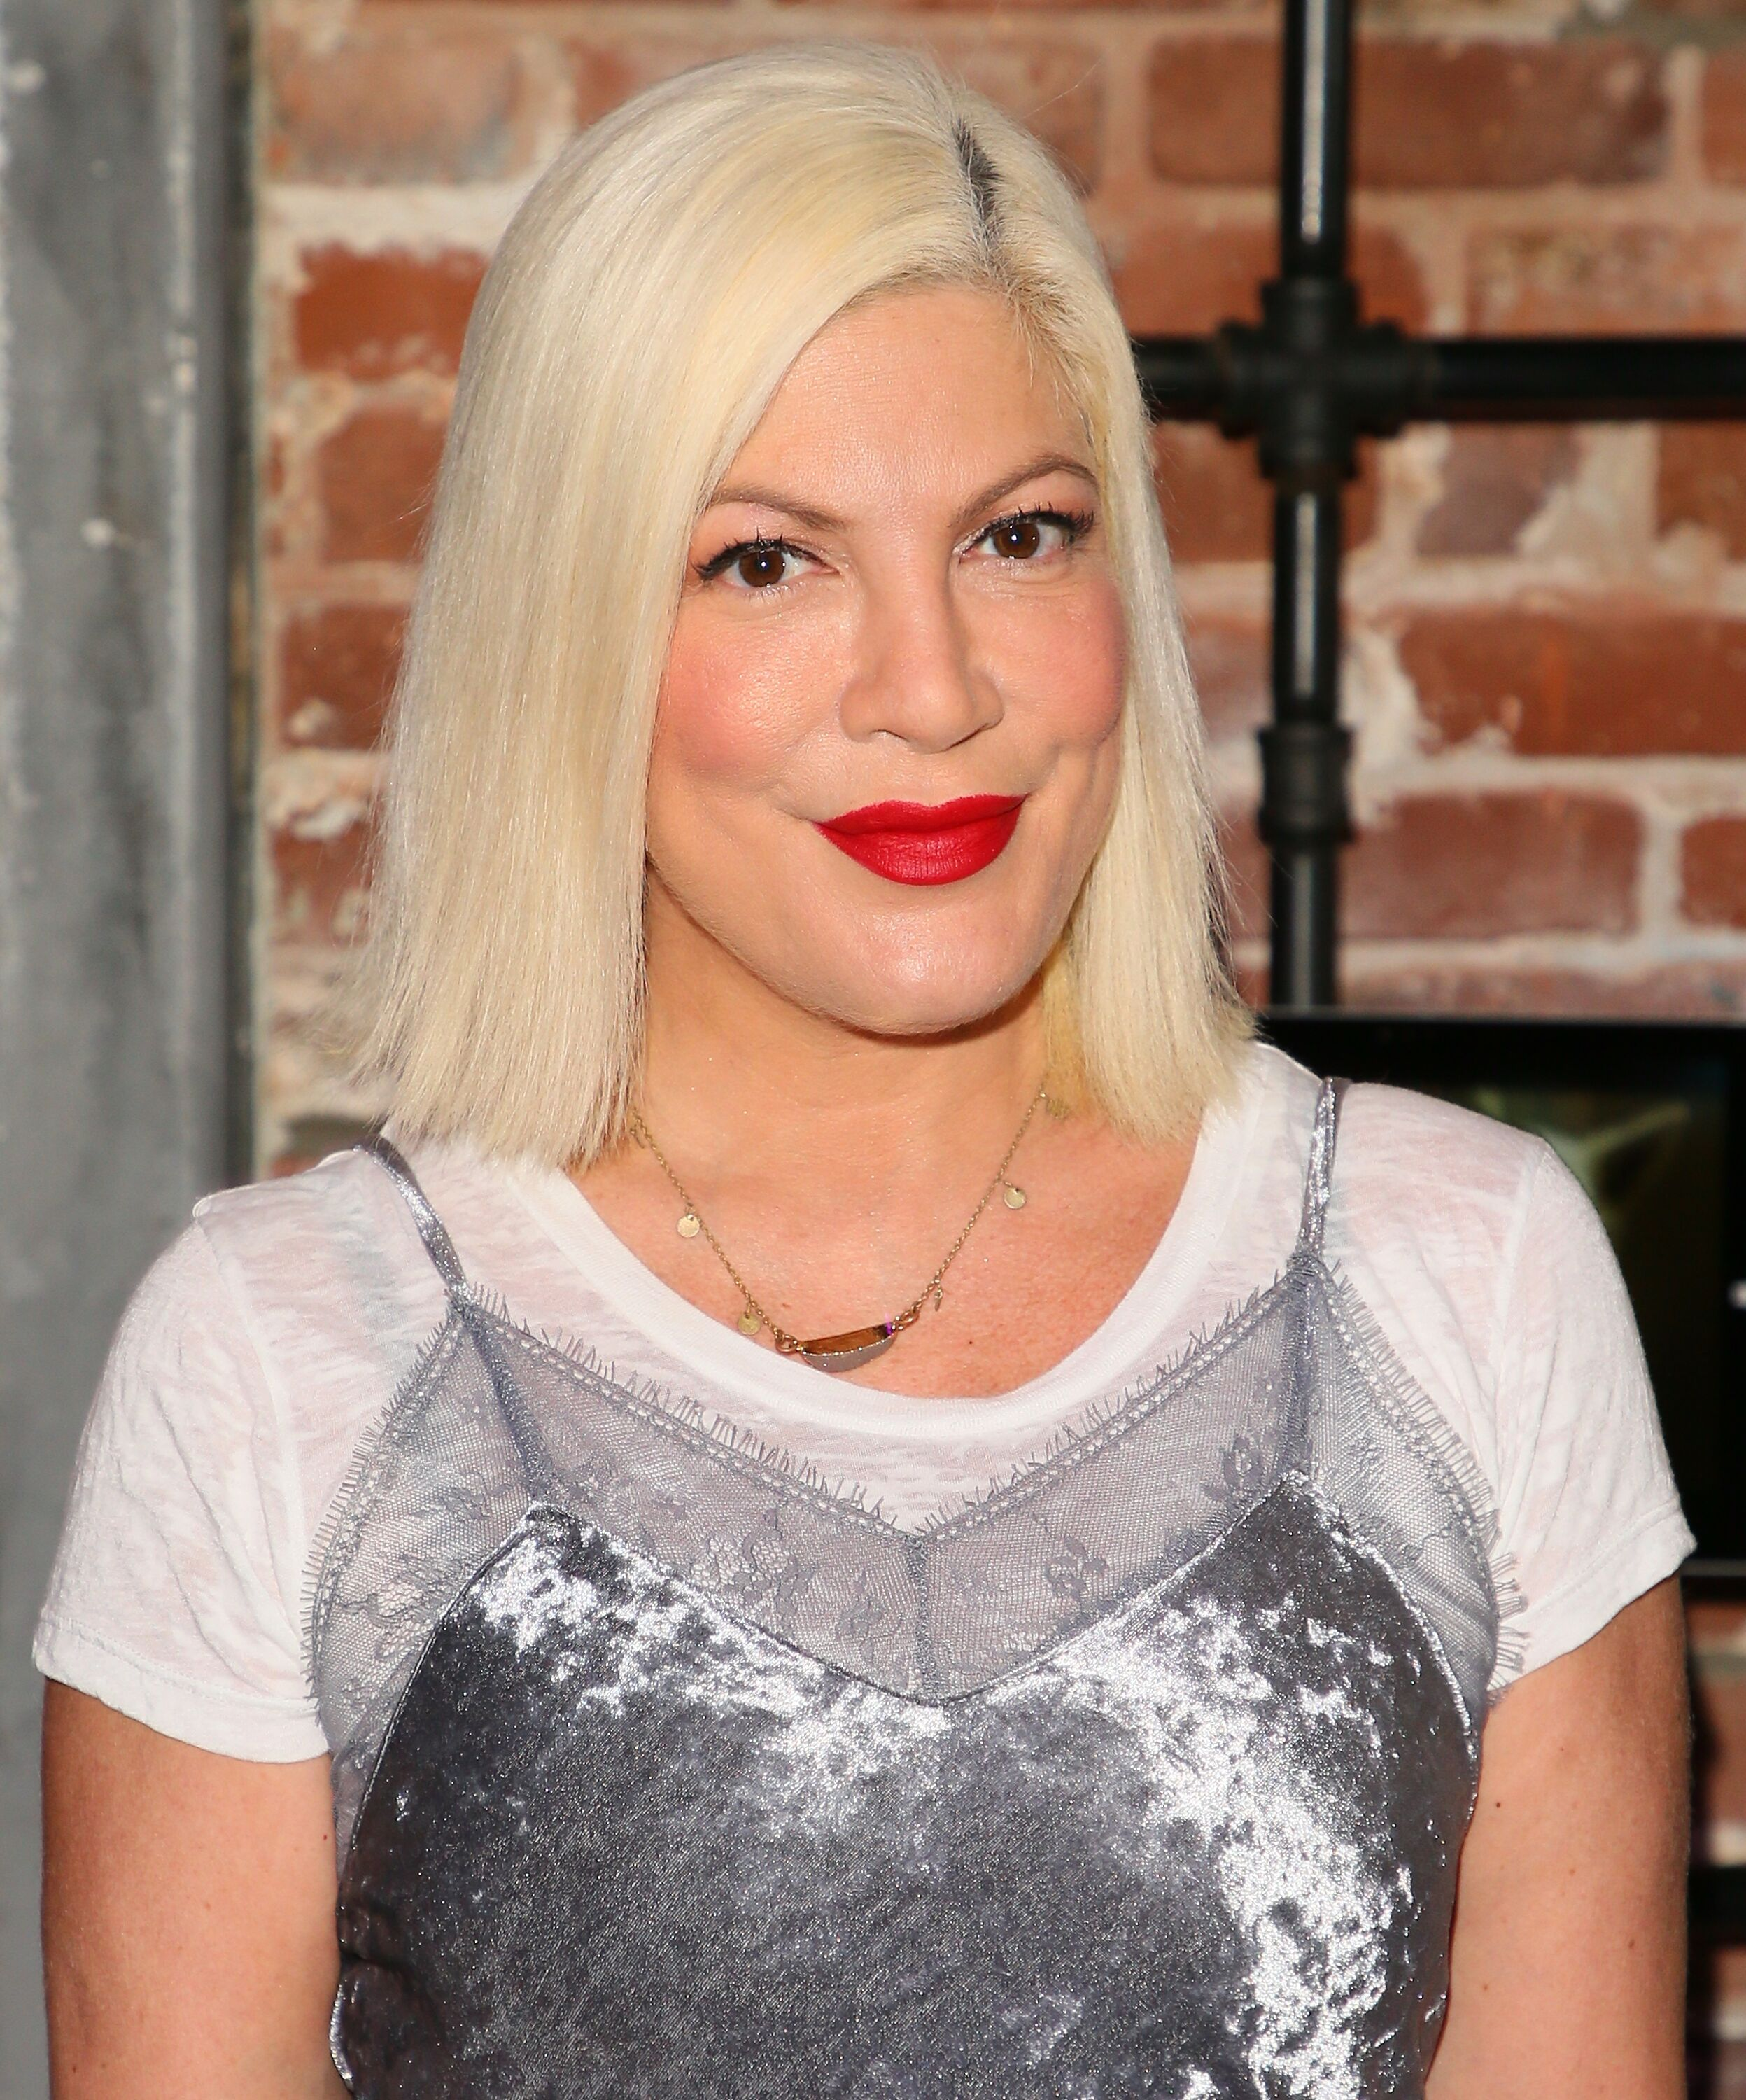 Tori Spelling at an Animal Rescue celebrity fundraiser event on October 07, 2017 in Venice, California.   Photo: Getty Images